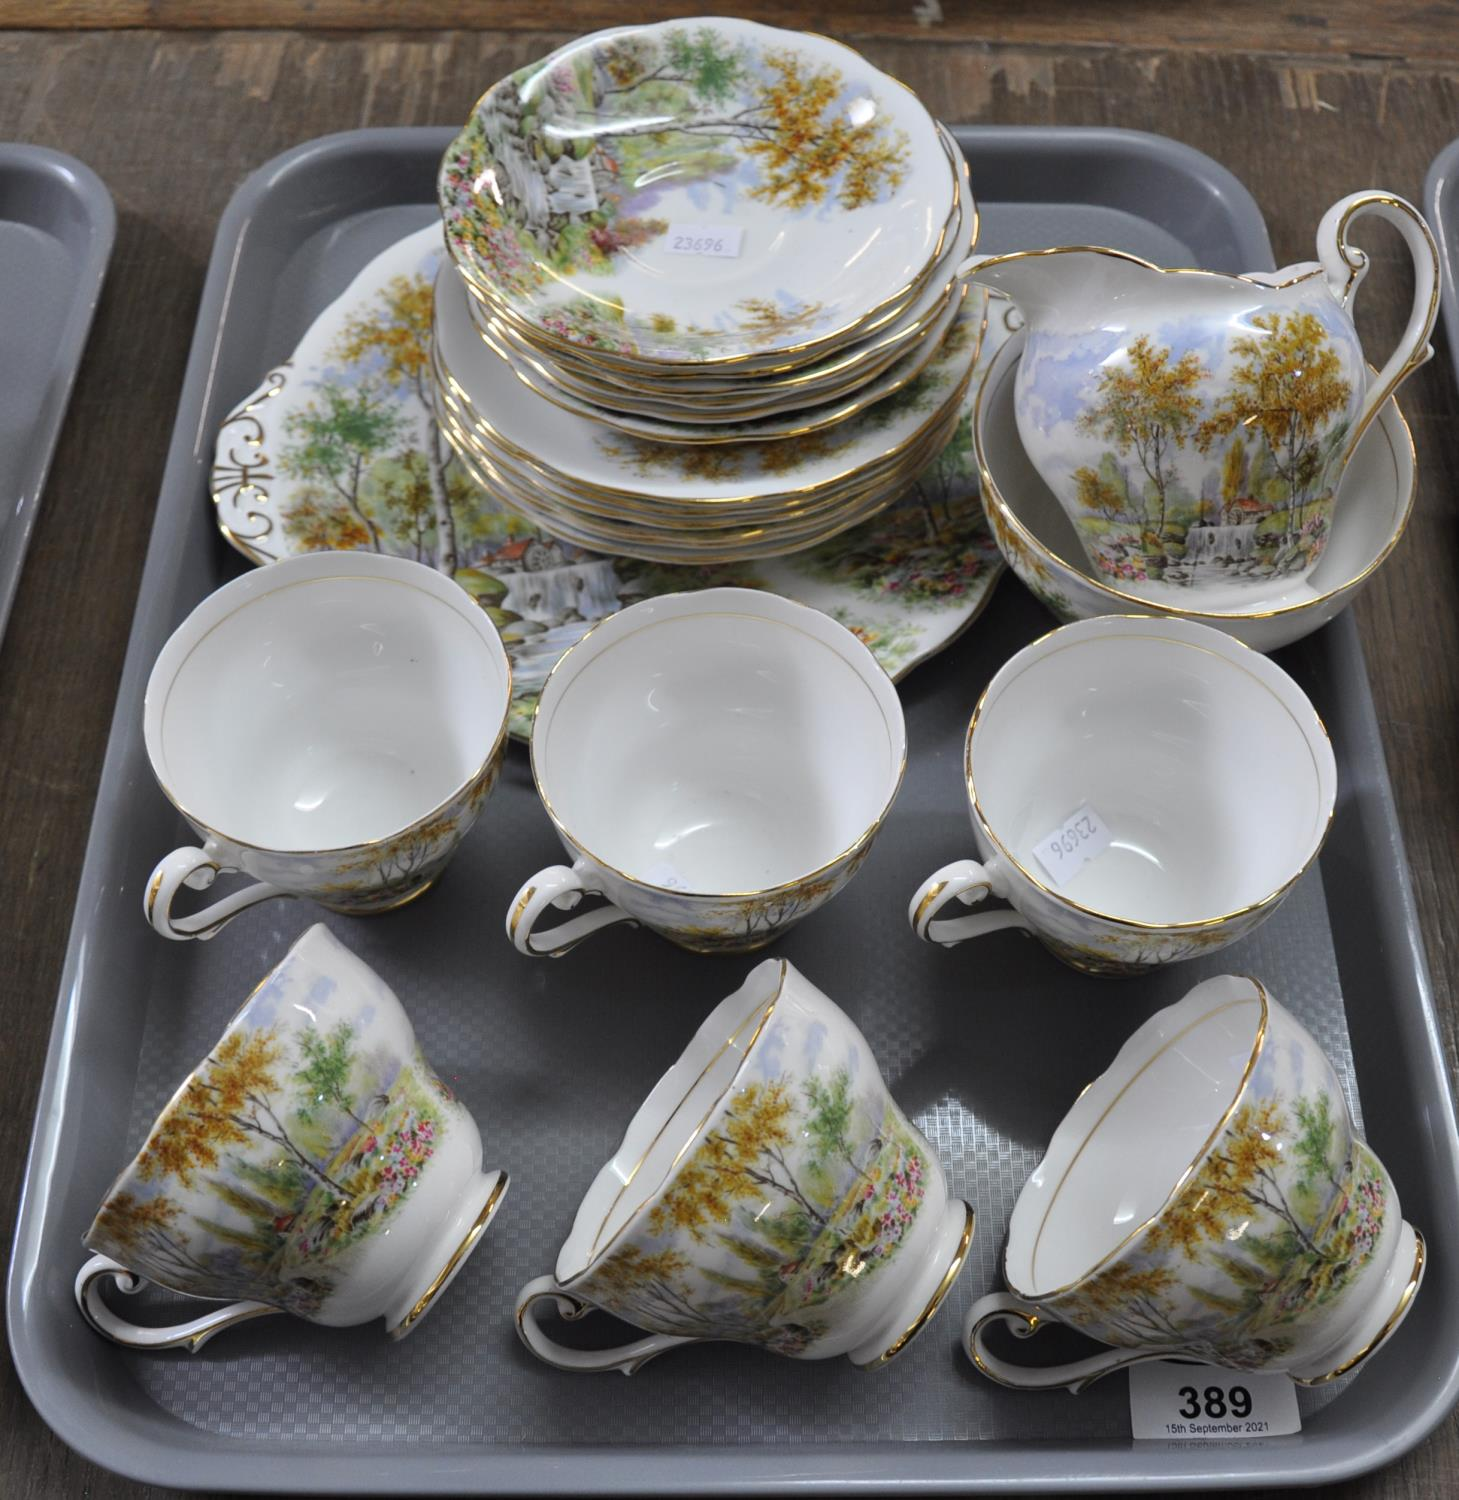 Tray of Royal Standard 'The Old Mill Stream' part teaware to include: six cups and saucers, six side